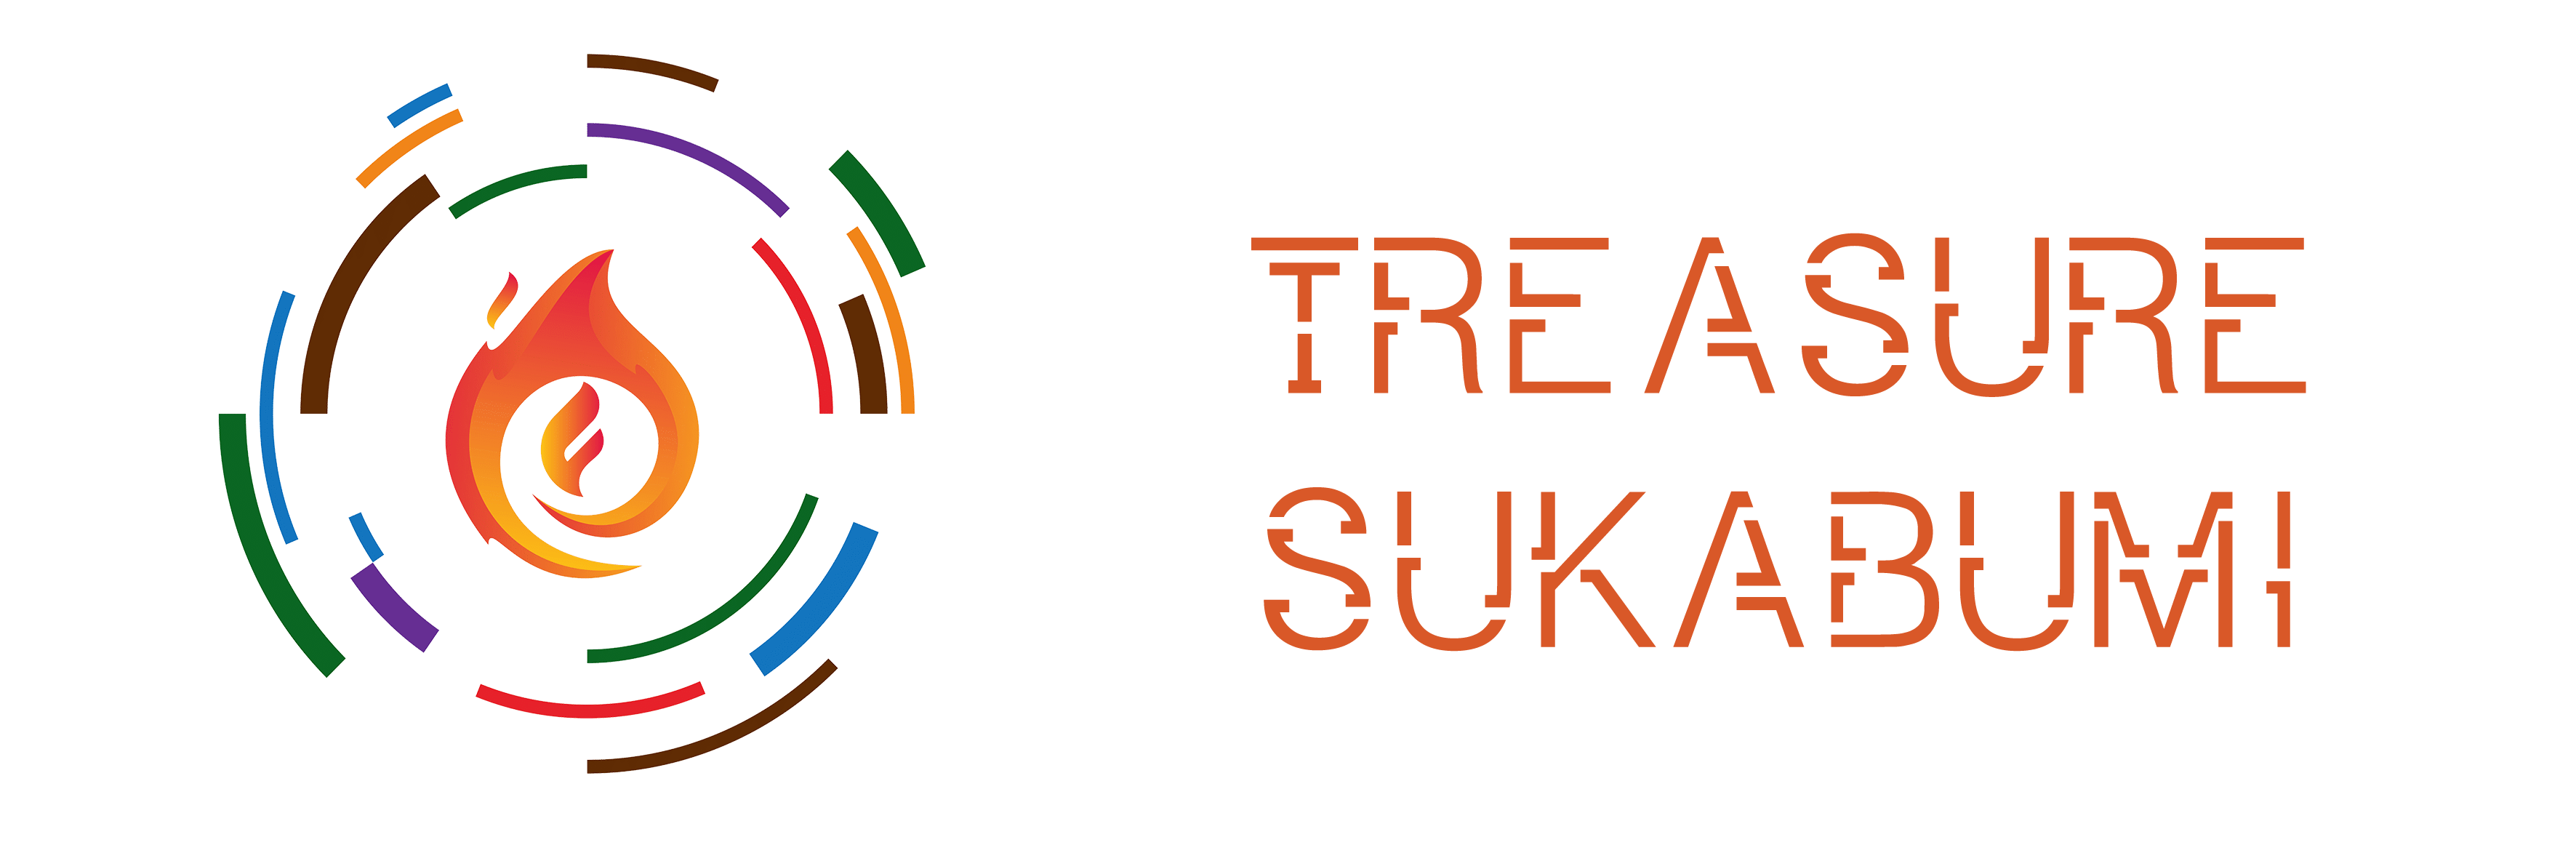 Treasure of sukabumi